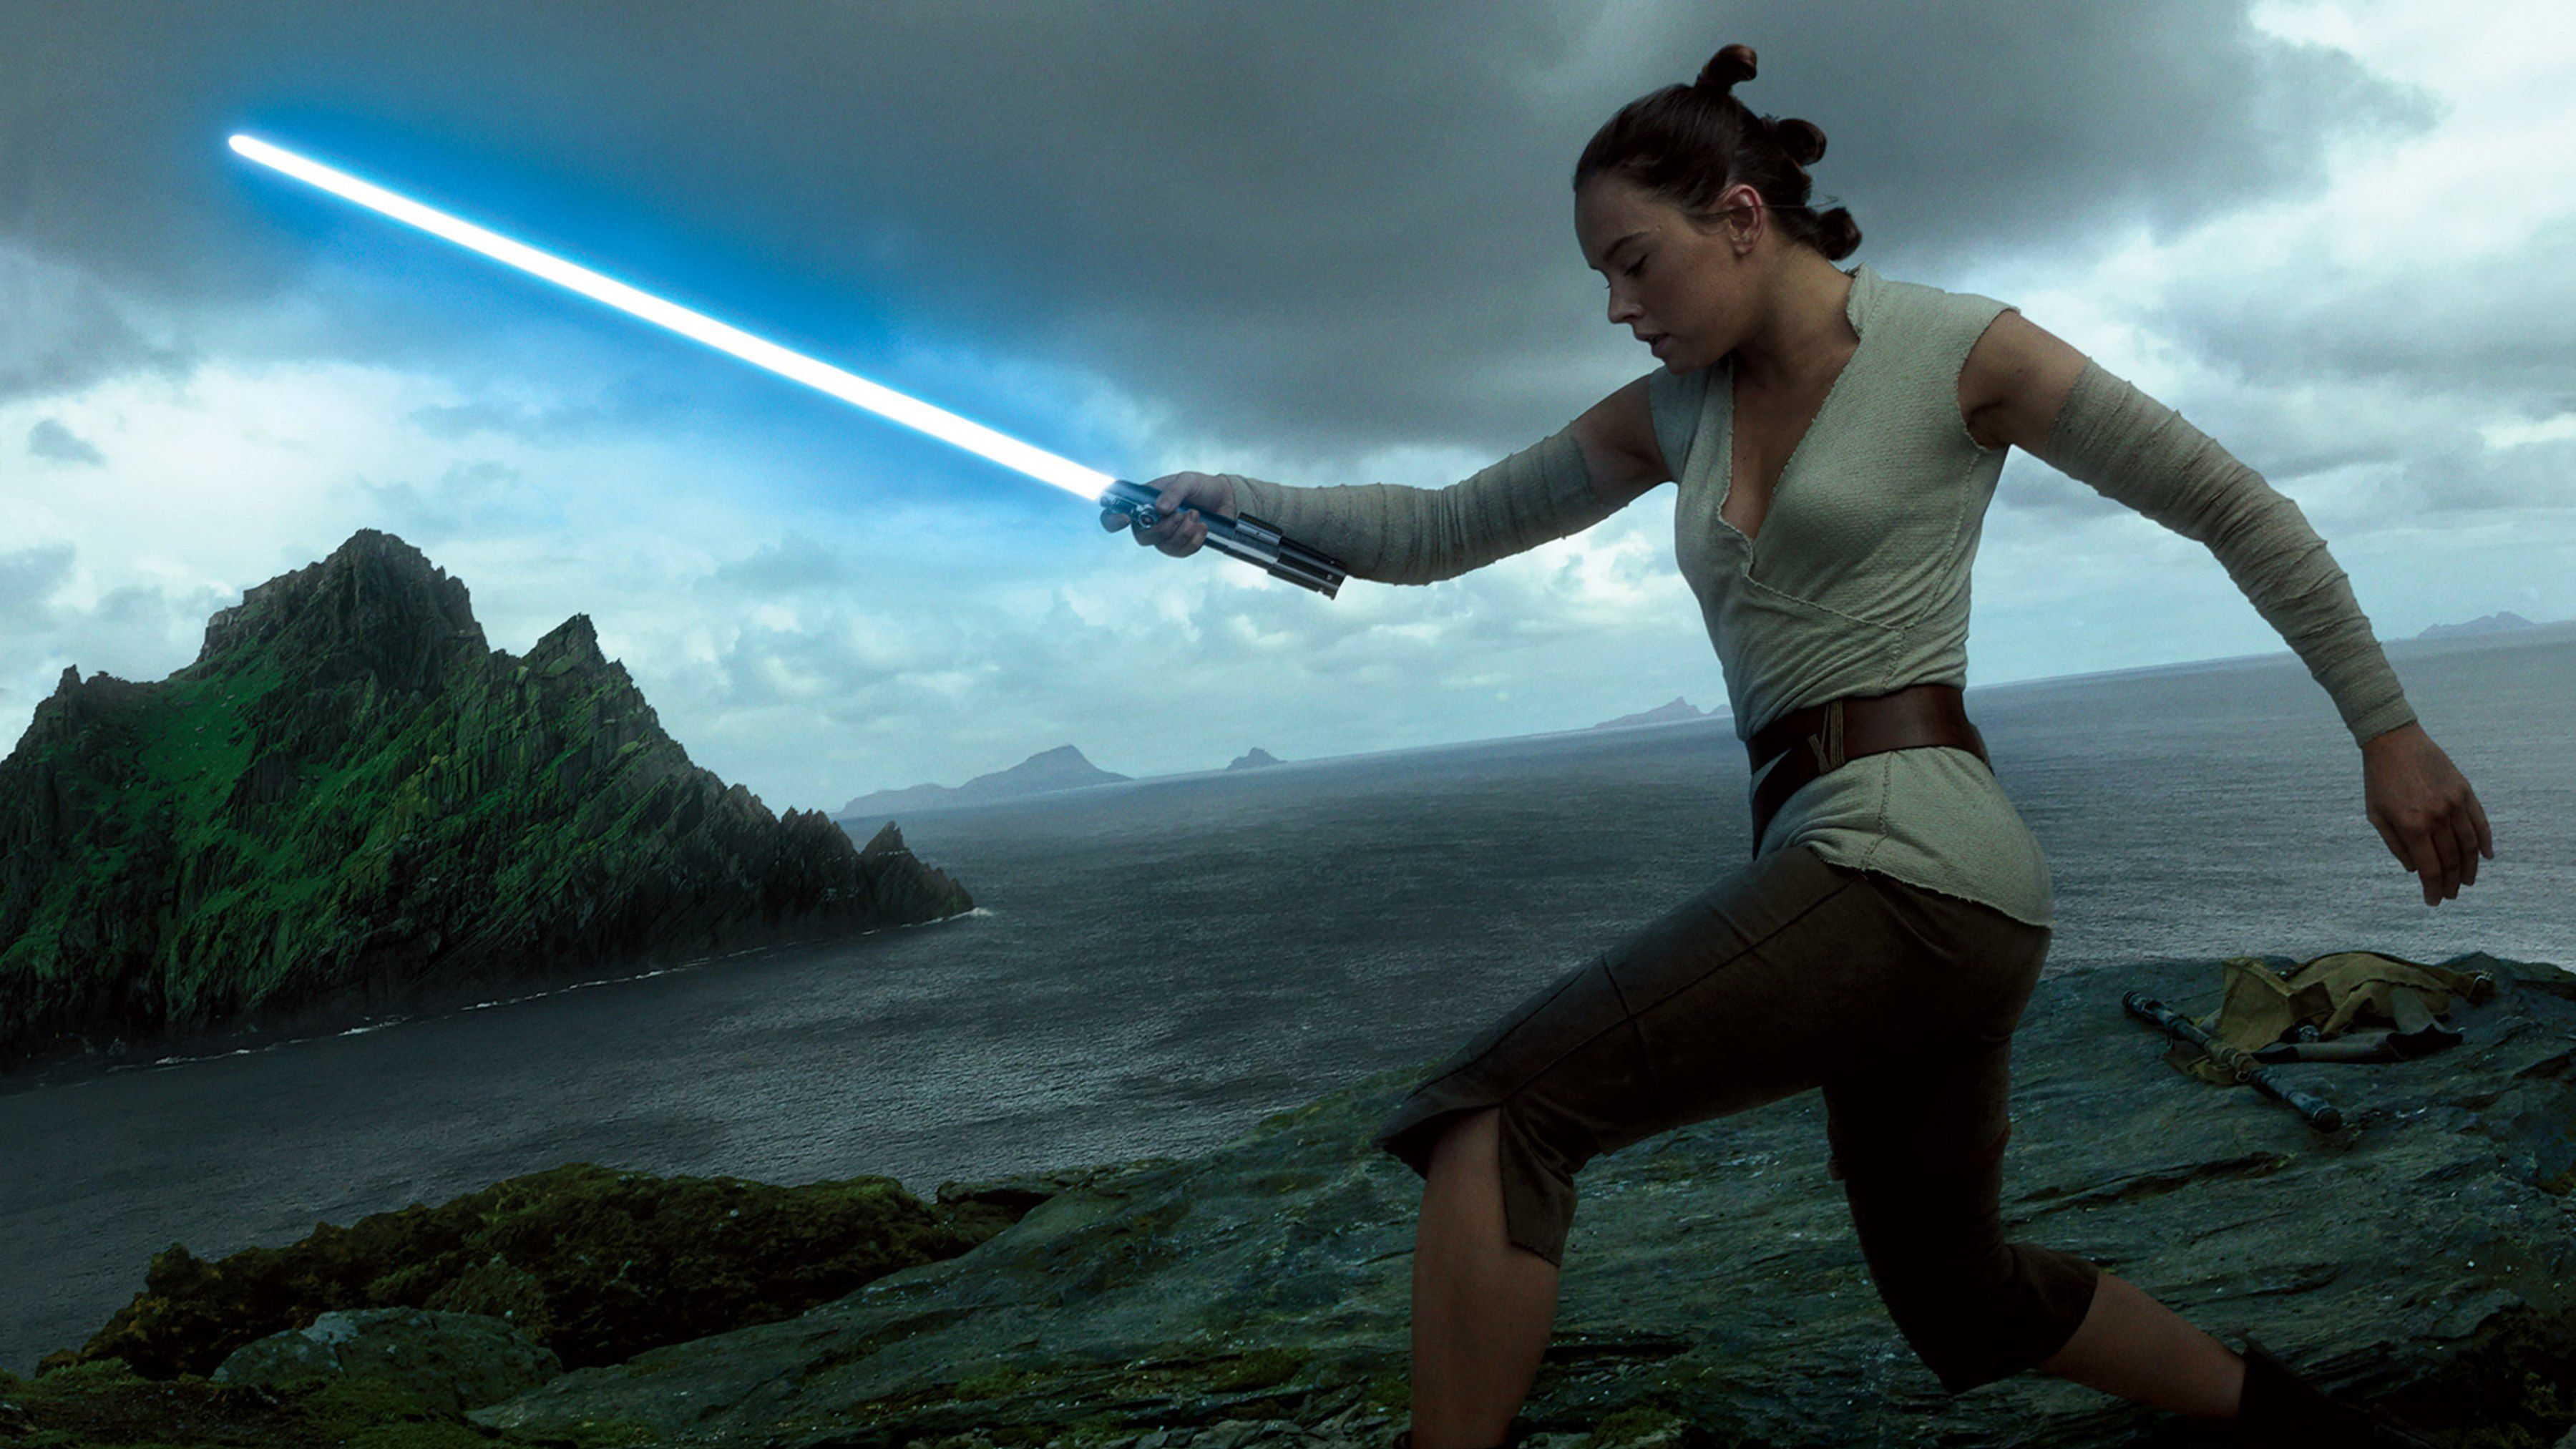 Daisy Ridley Star Wars Wallpapers Top Free Daisy Ridley Star Wars Backgrounds Wallpaperaccess